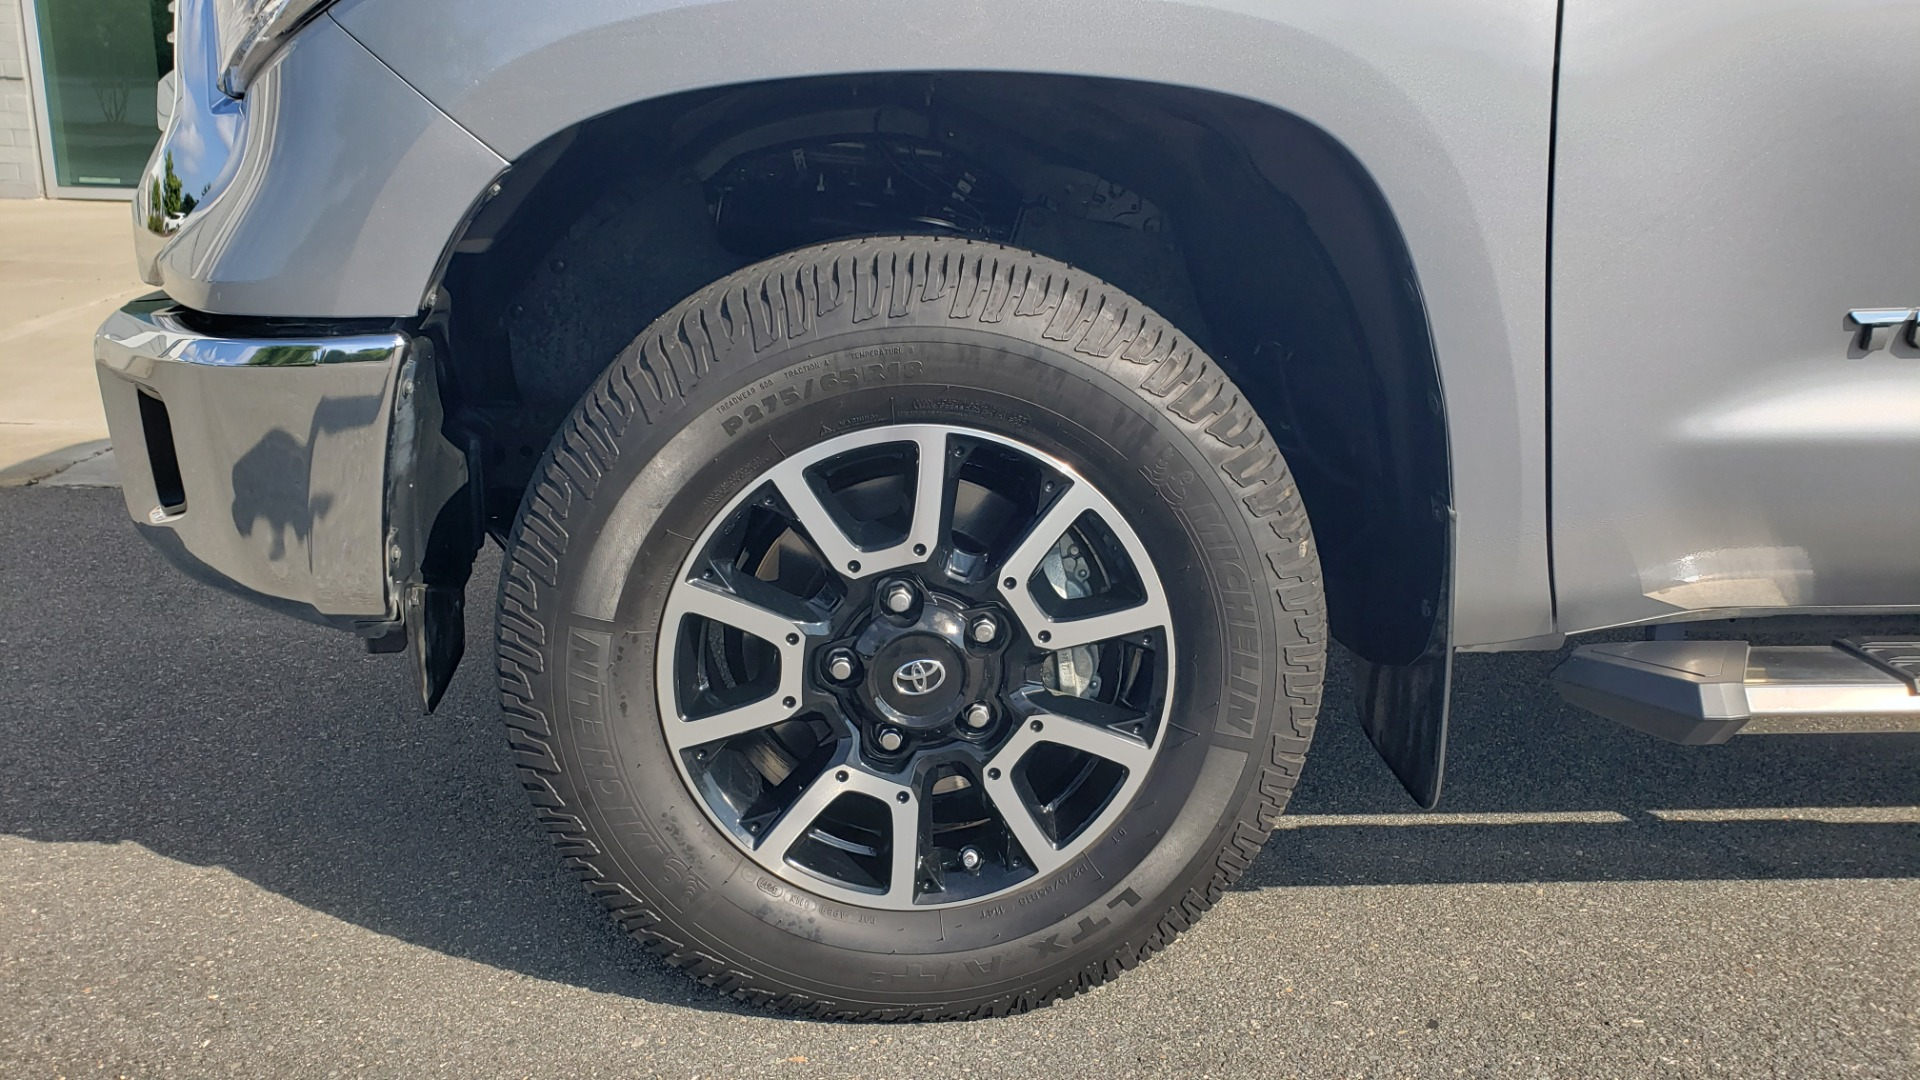 Used 2017 Toyota TUNDRA 4WD SR5 CREWMAX / 5.7L V8 / 6-SPD AUTO / NAV / REARVIEW for sale $44,395 at Formula Imports in Charlotte NC 28227 81